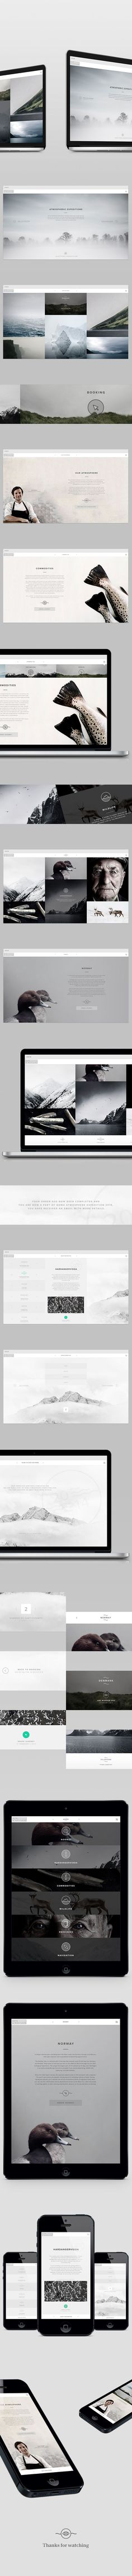 Noma Atmosphere is a concept behind a new gastronomic travel site developed for the worlds' best restaurant Noma located in Copenhagen, Denmark. Noma is known for its reinvention and interpretation of the Nordic Cuisine. In the restaurant they create an e…: